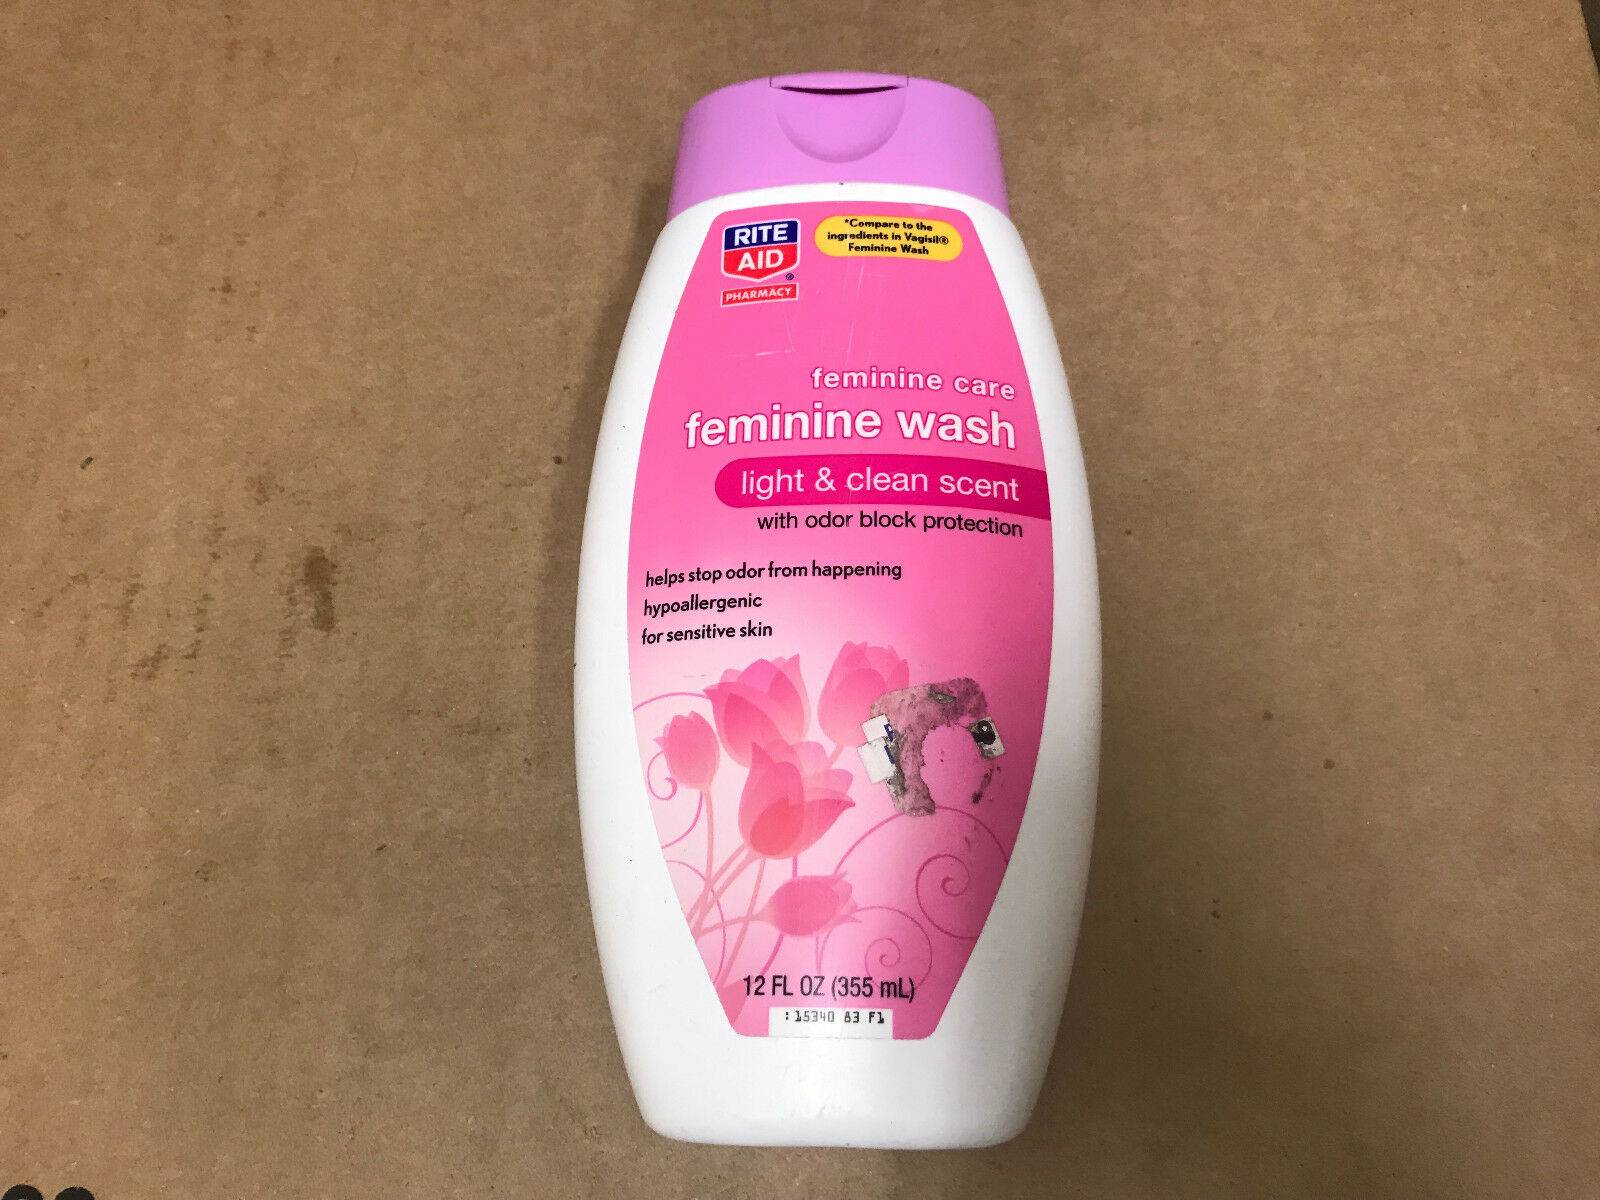 Rite Aid Feminine Care Feminine Wash Light & Clean Scent 12